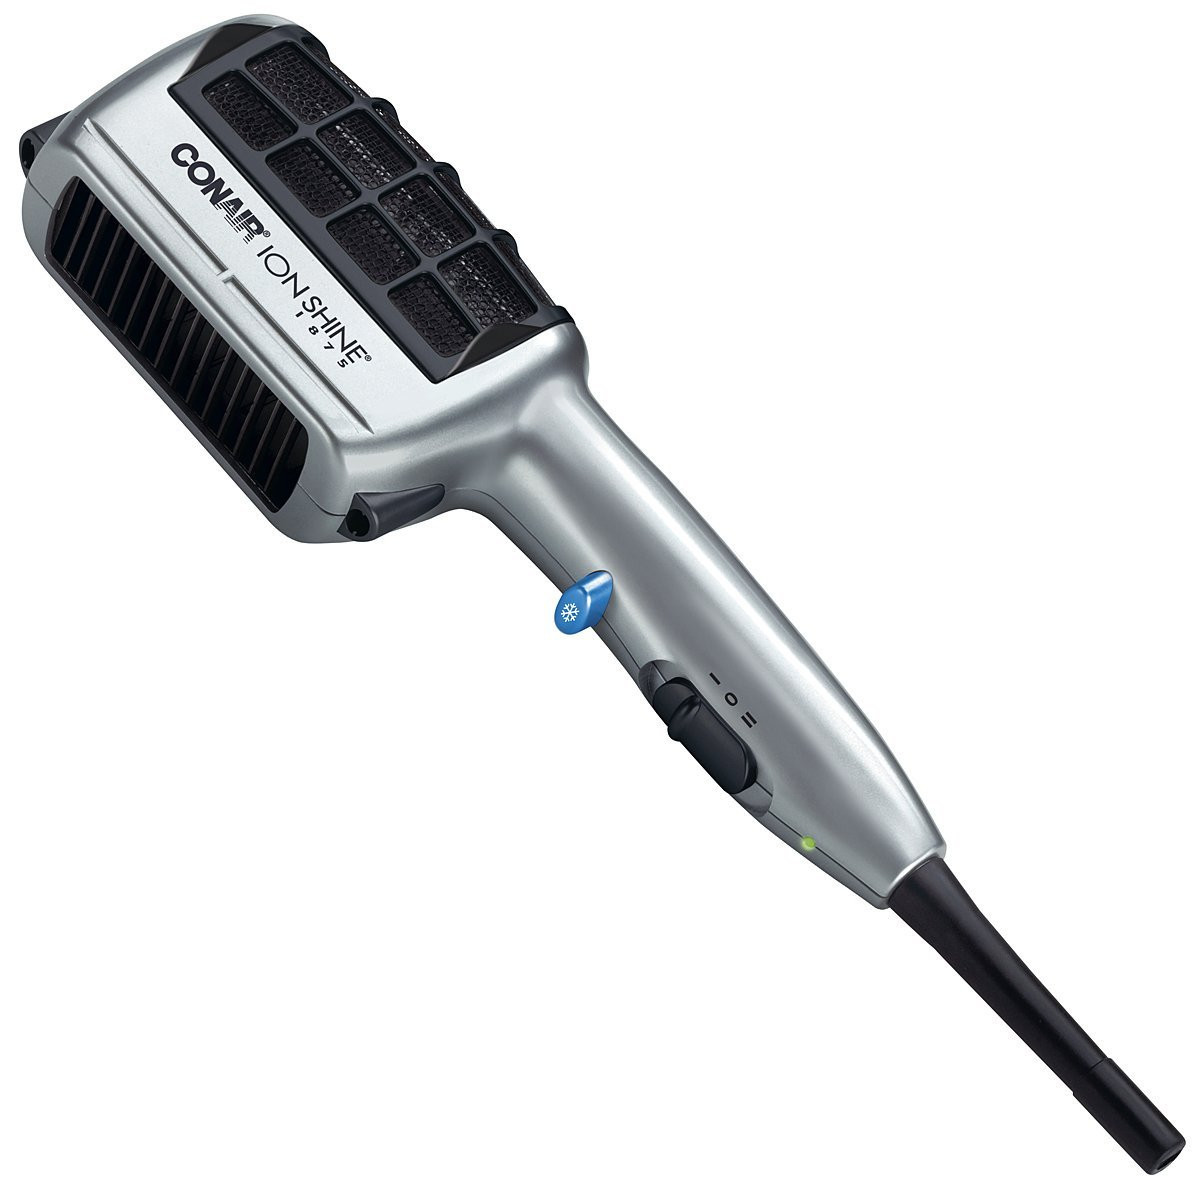 Conair - 1875 Watt Ionic Styler - Hair Dryer